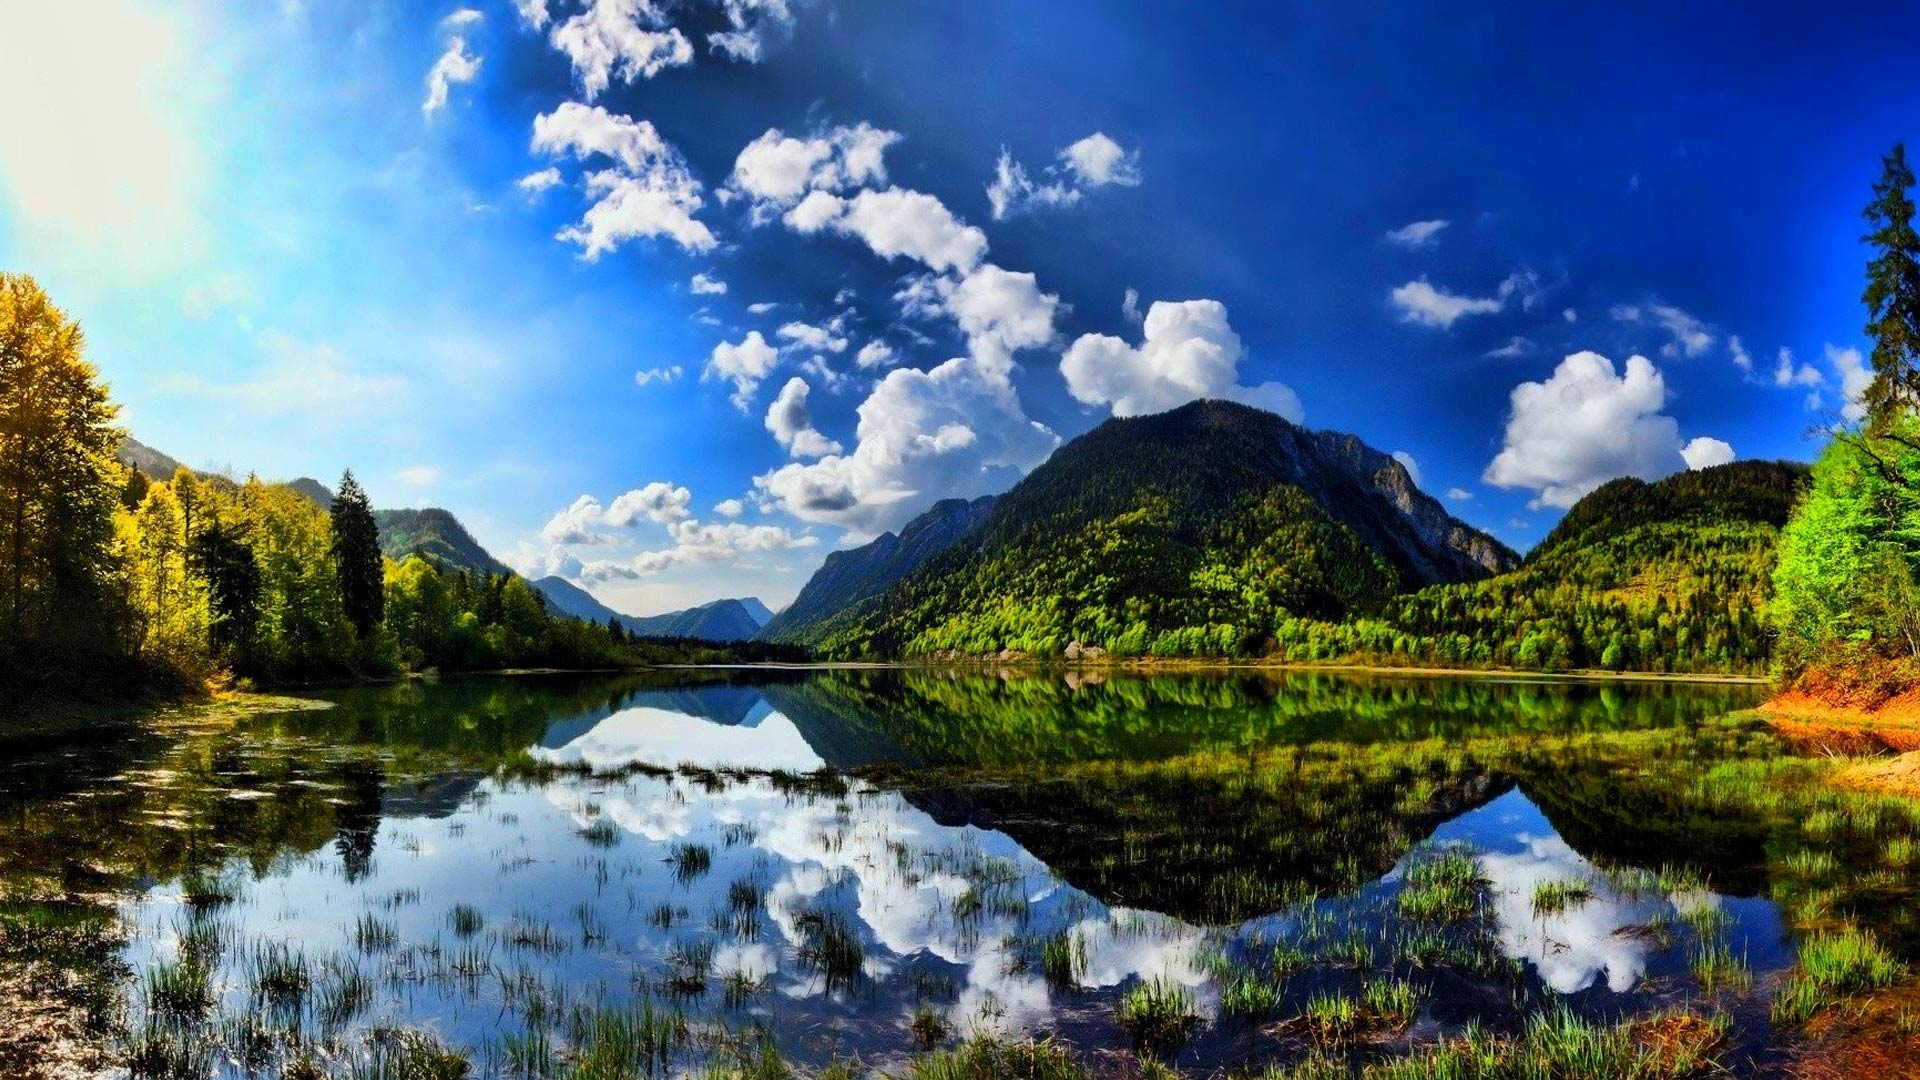 Summer sunshine scenes lake mountain wallpapers on your desktop screen 1920x1080